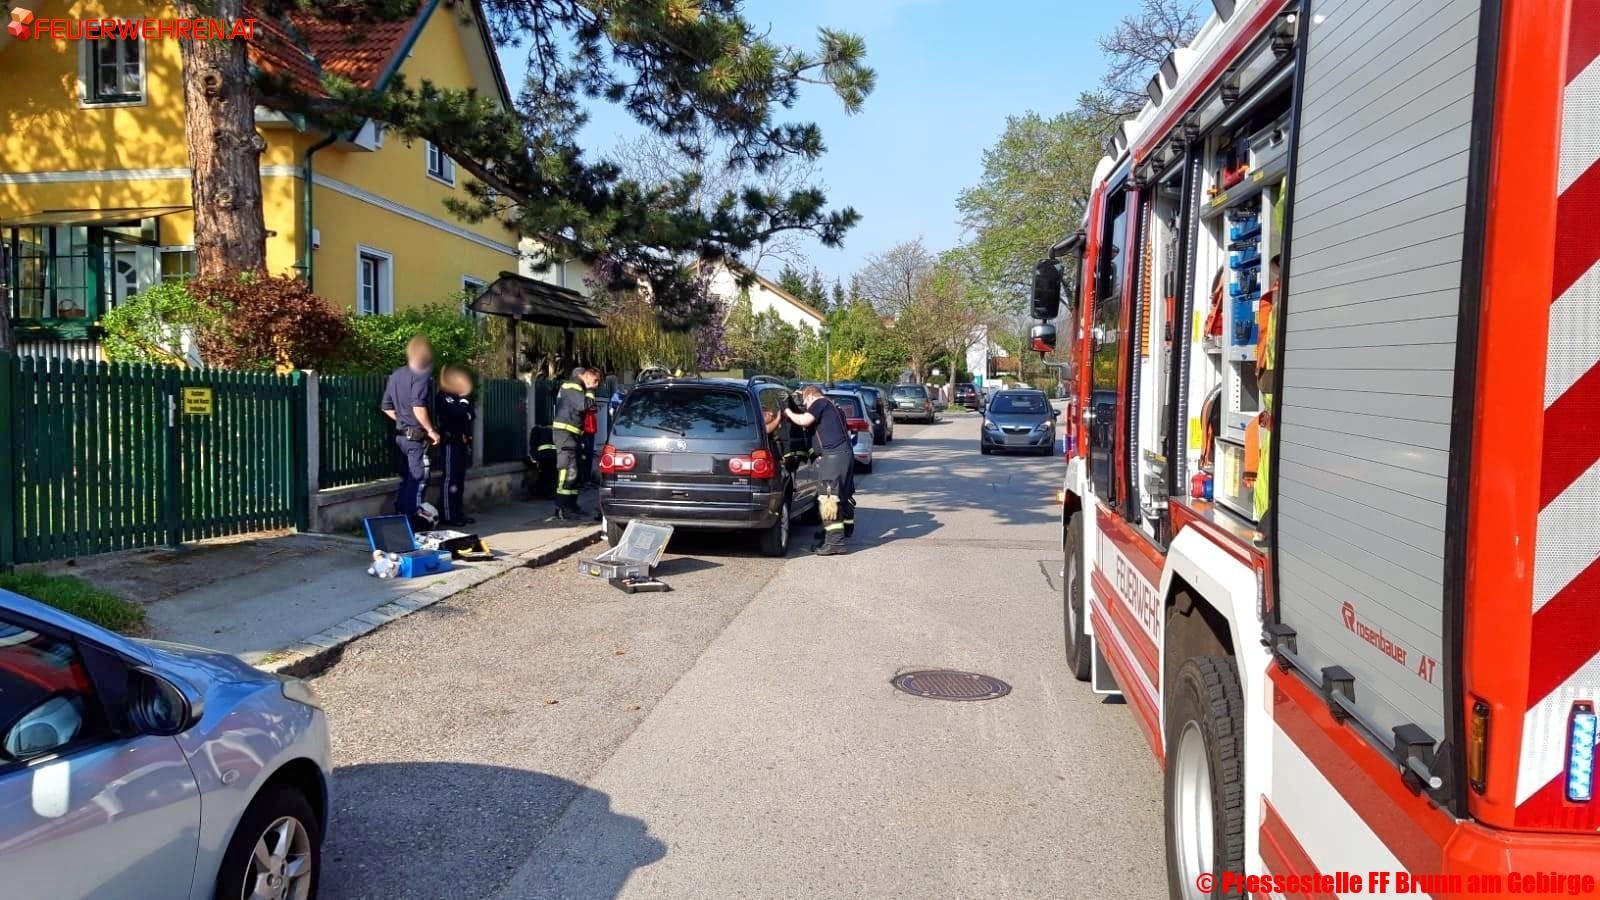 Pressestelle FF Brunn am Gebirge